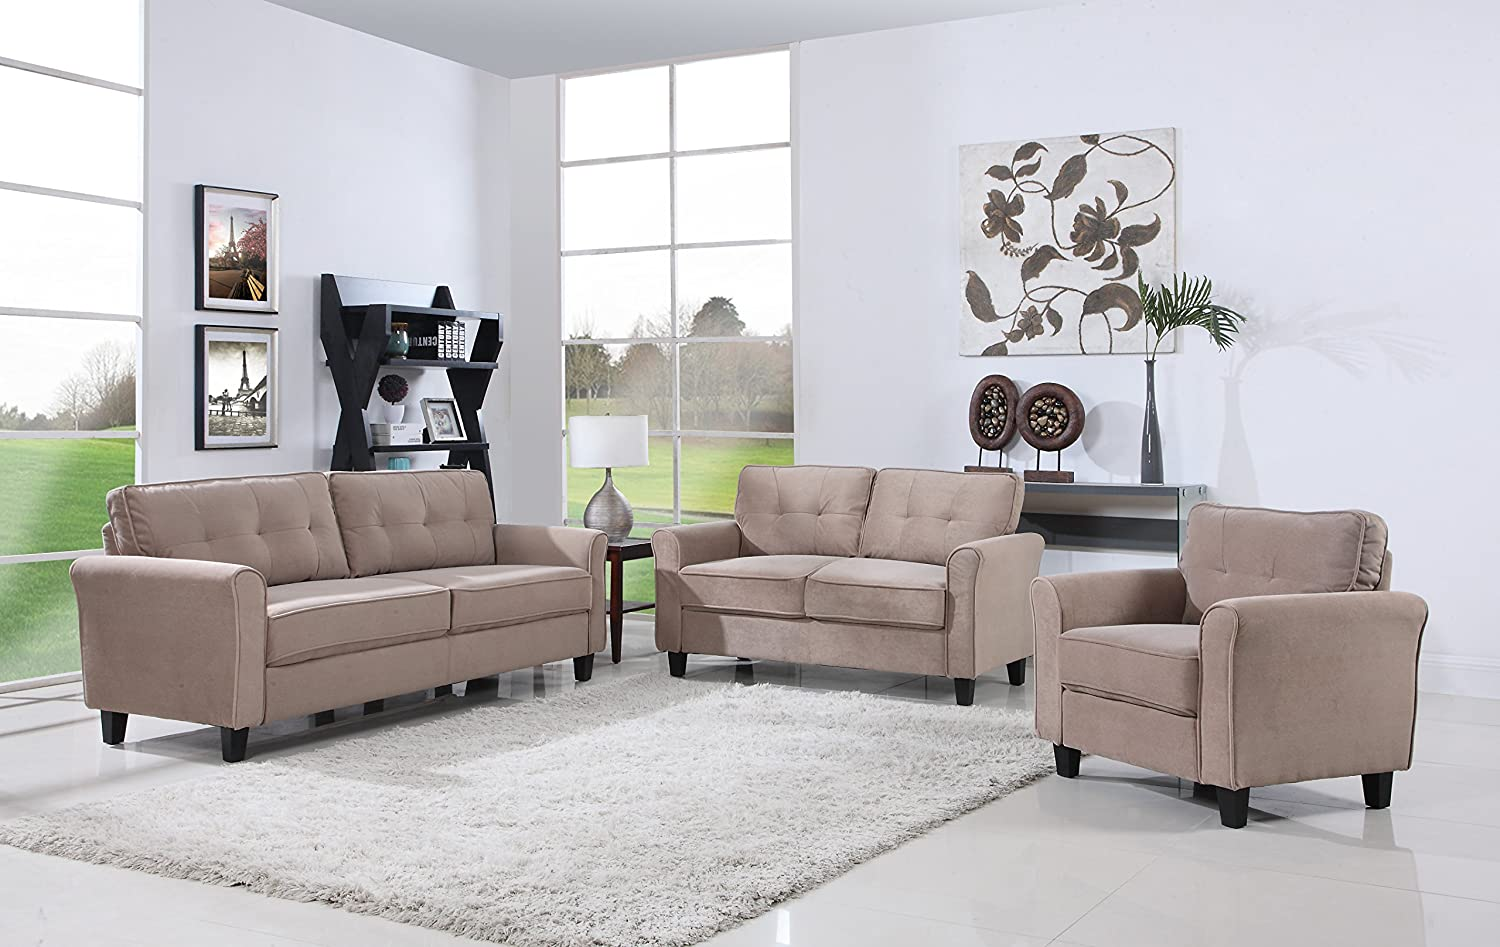 Cheap living room sets under 300 best living room sets for Best living room furniture reviews